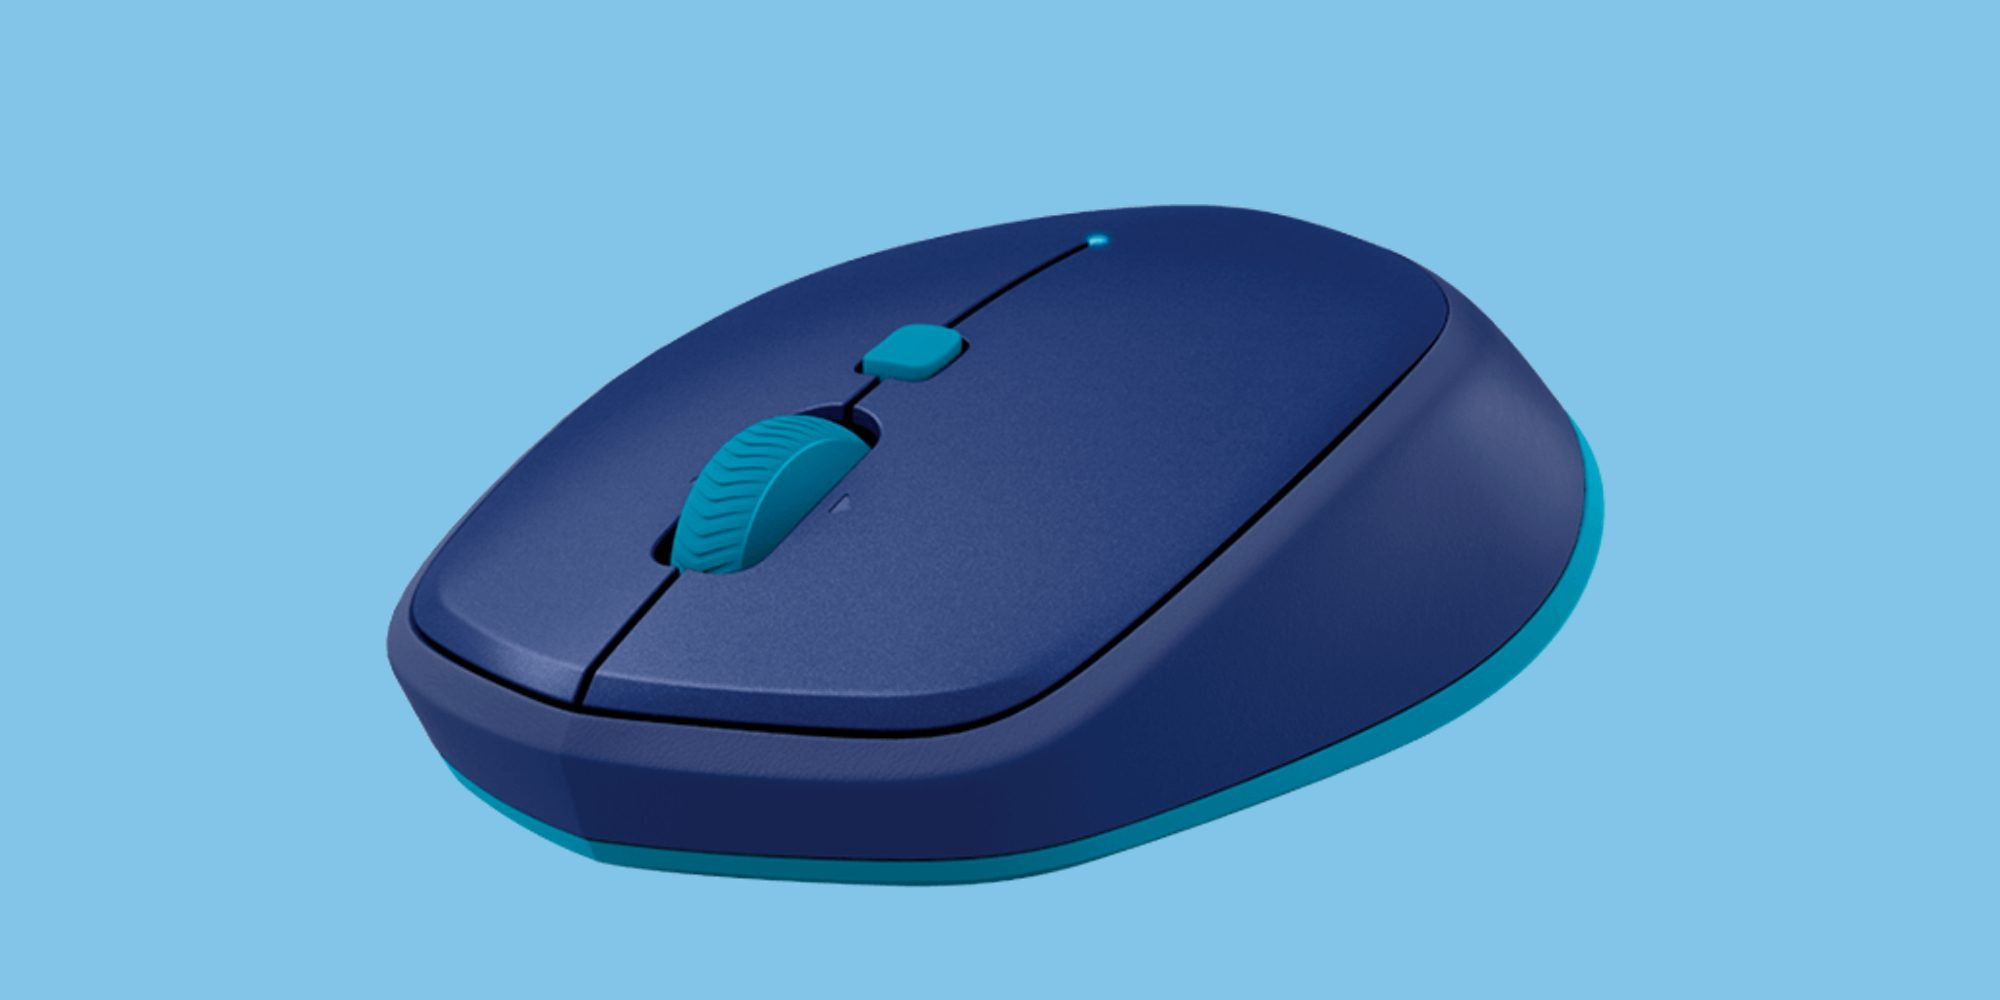 36b1a7d0a31 Pair Logitech's M535 Bluetooth Mouse with your Mac at a new Amazon low of  $15 (40% off)